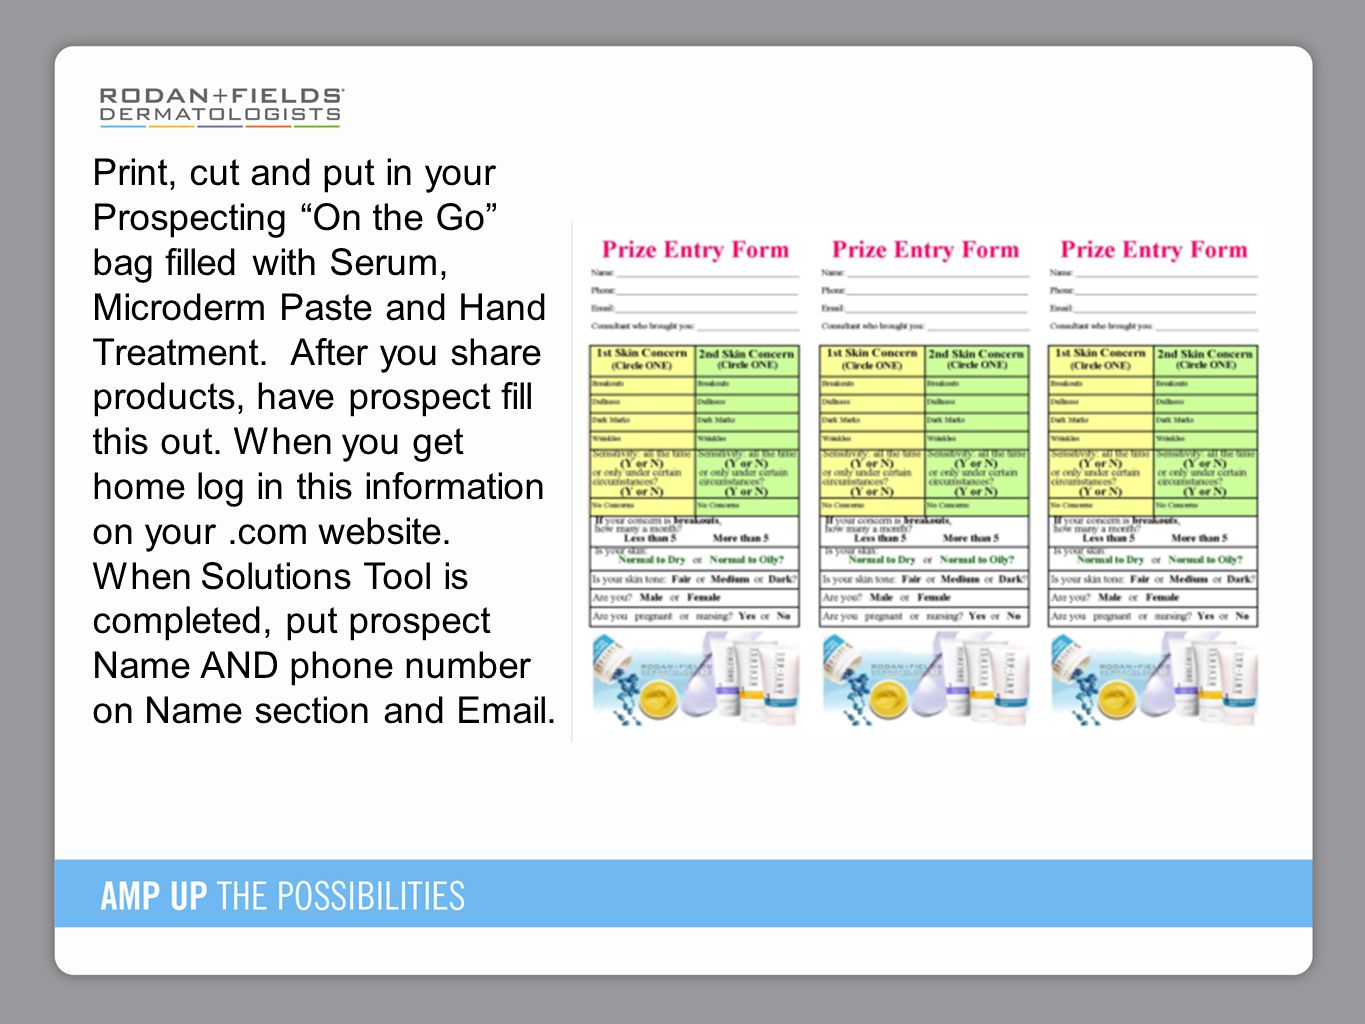 Print, cut and put in your Prospecting On the Go bag filled with Serum, Microderm Paste and Hand Treatment. After you share products, have prospect fill this out. When you get home log in this information on your .com website. When Solutions Tool is completed, put prospect Name AND phone number on Name section and Email.